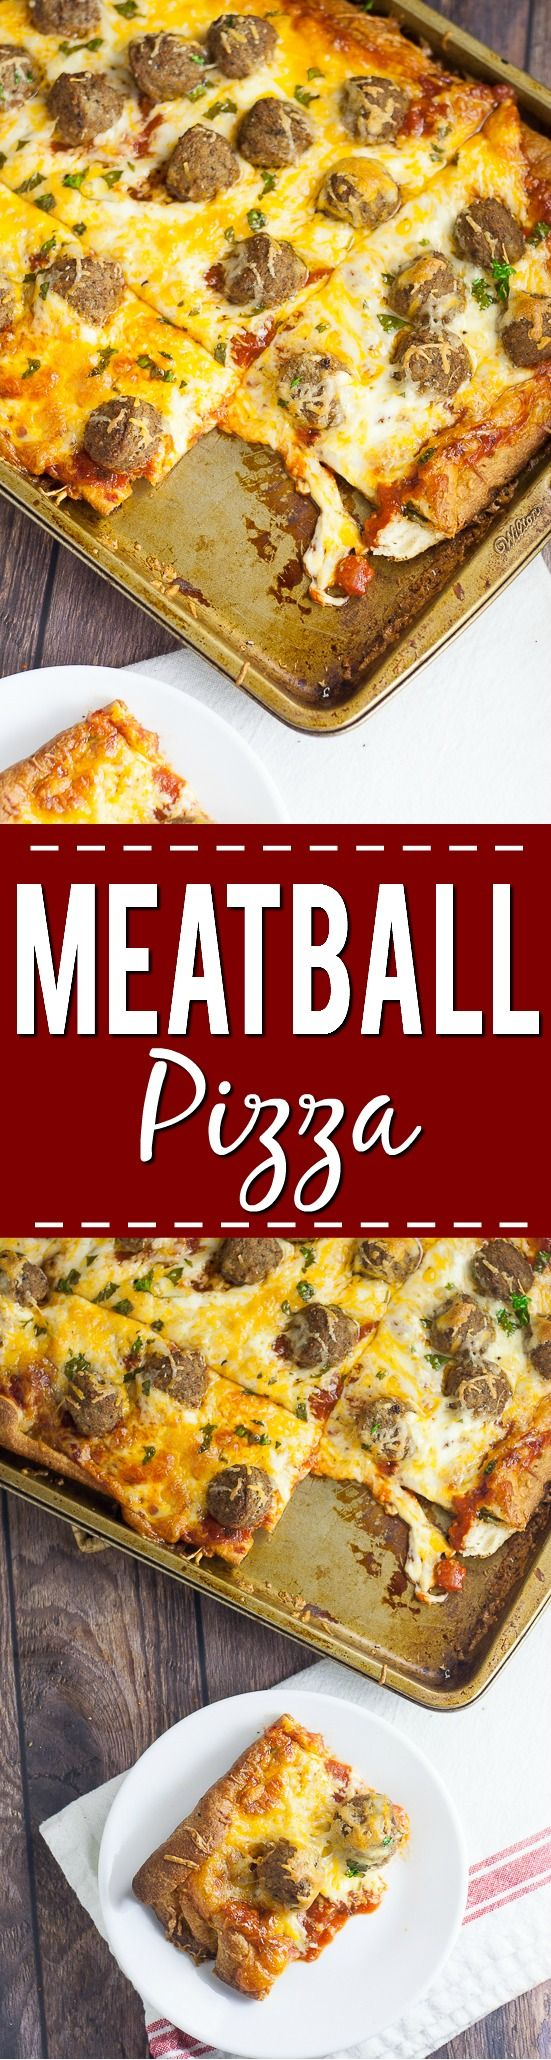 Meatball Pizza Recipe - A quick and easy recipe for Meatball Pizza that even the kids can help with! Crispy crust, gooey cheese, and Italian meatballs make the perfect family pizza night! Quick and easy family dinner recipe the kids will LOVE!